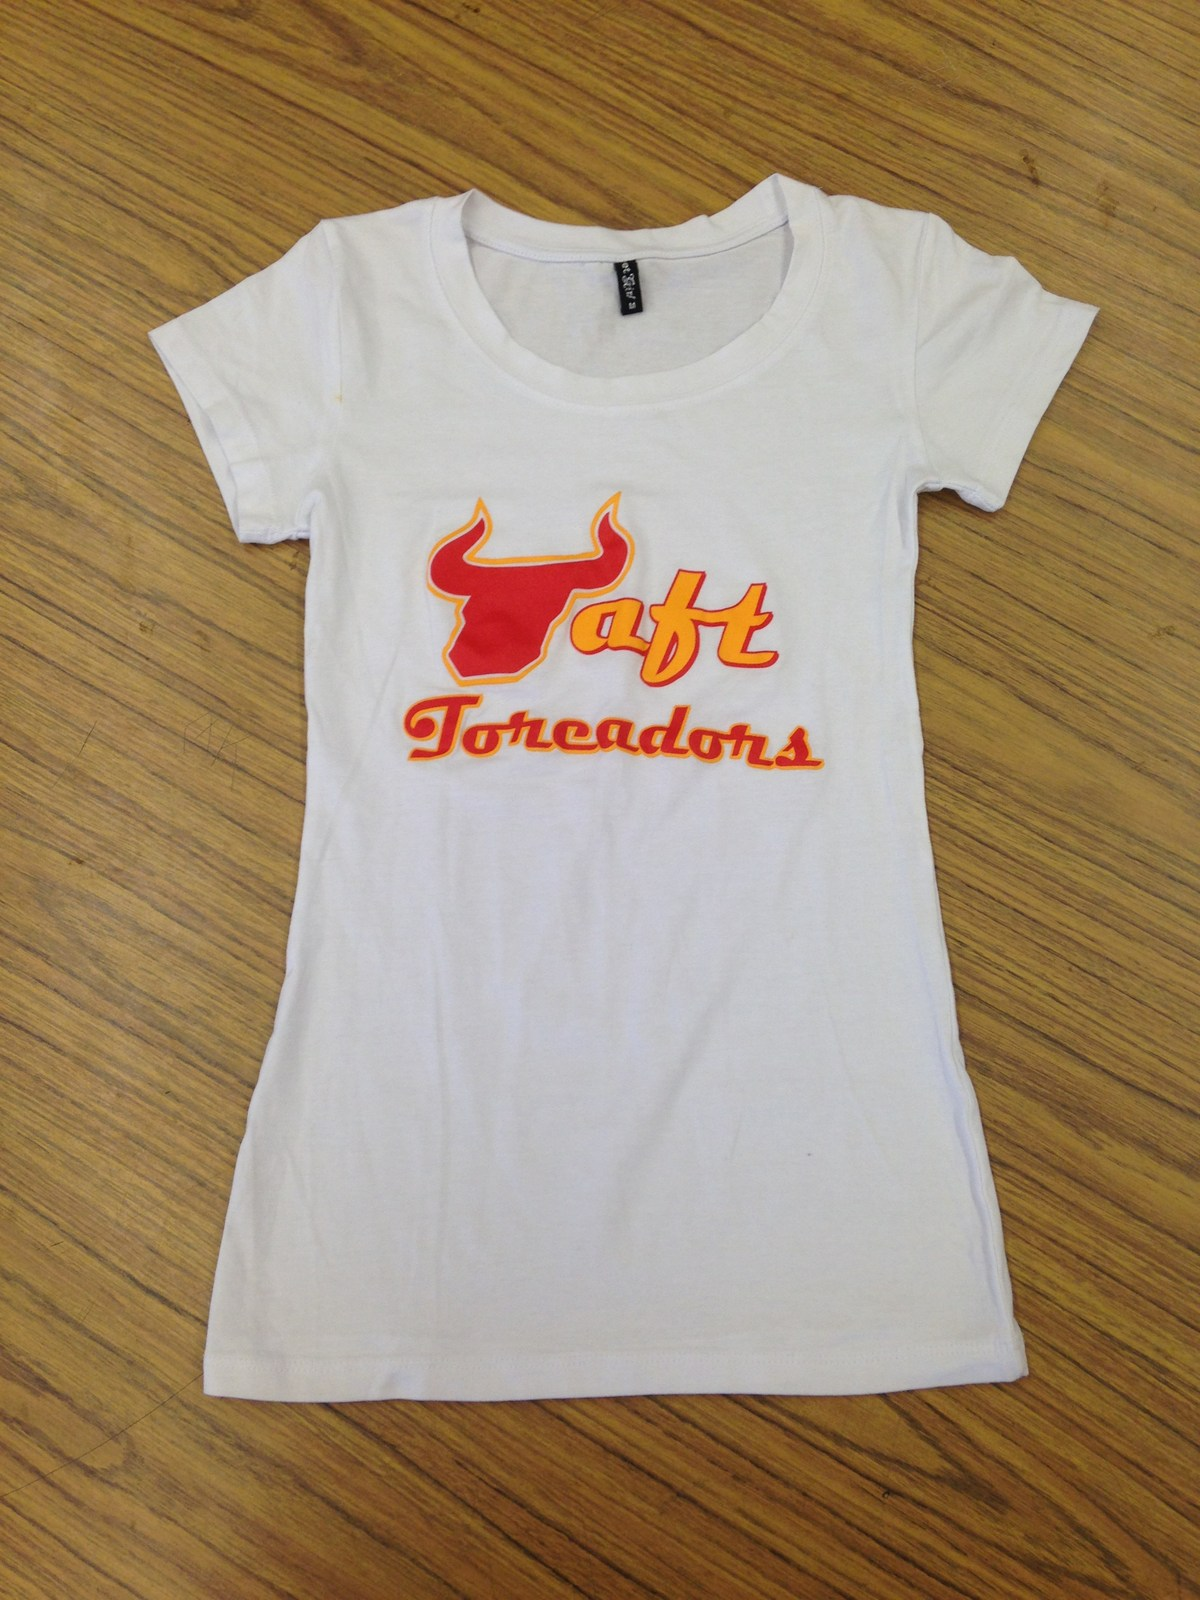 Available in Ladies sizes only